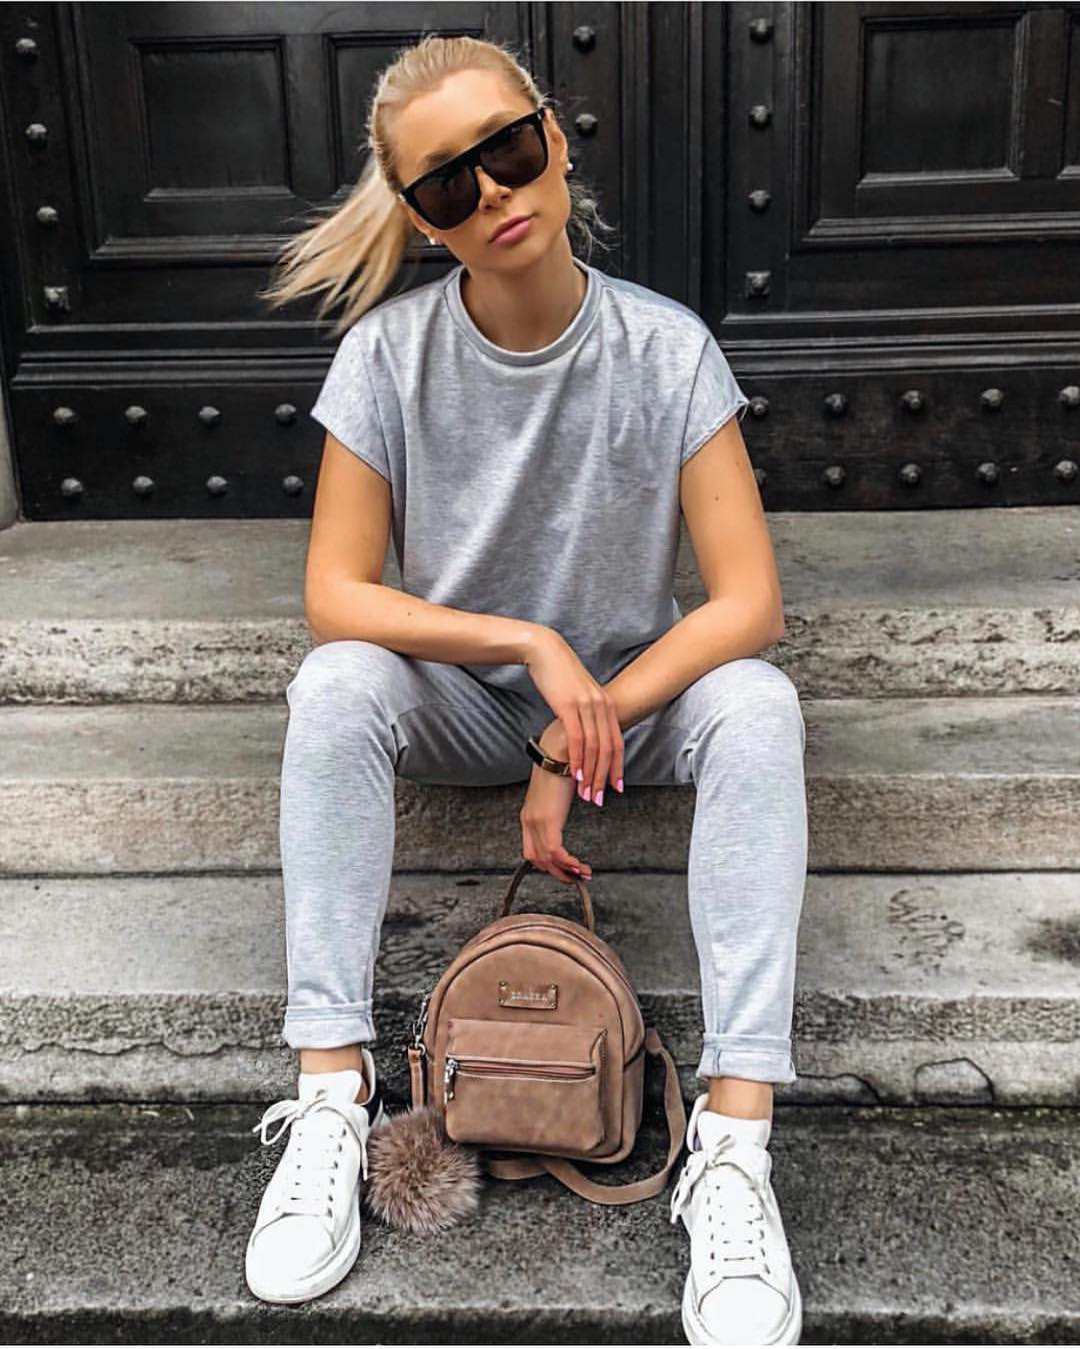 Flat Brow Sunglasses With Tee, Sweat Jeans And White Trainers: Athleisure Basics 2021